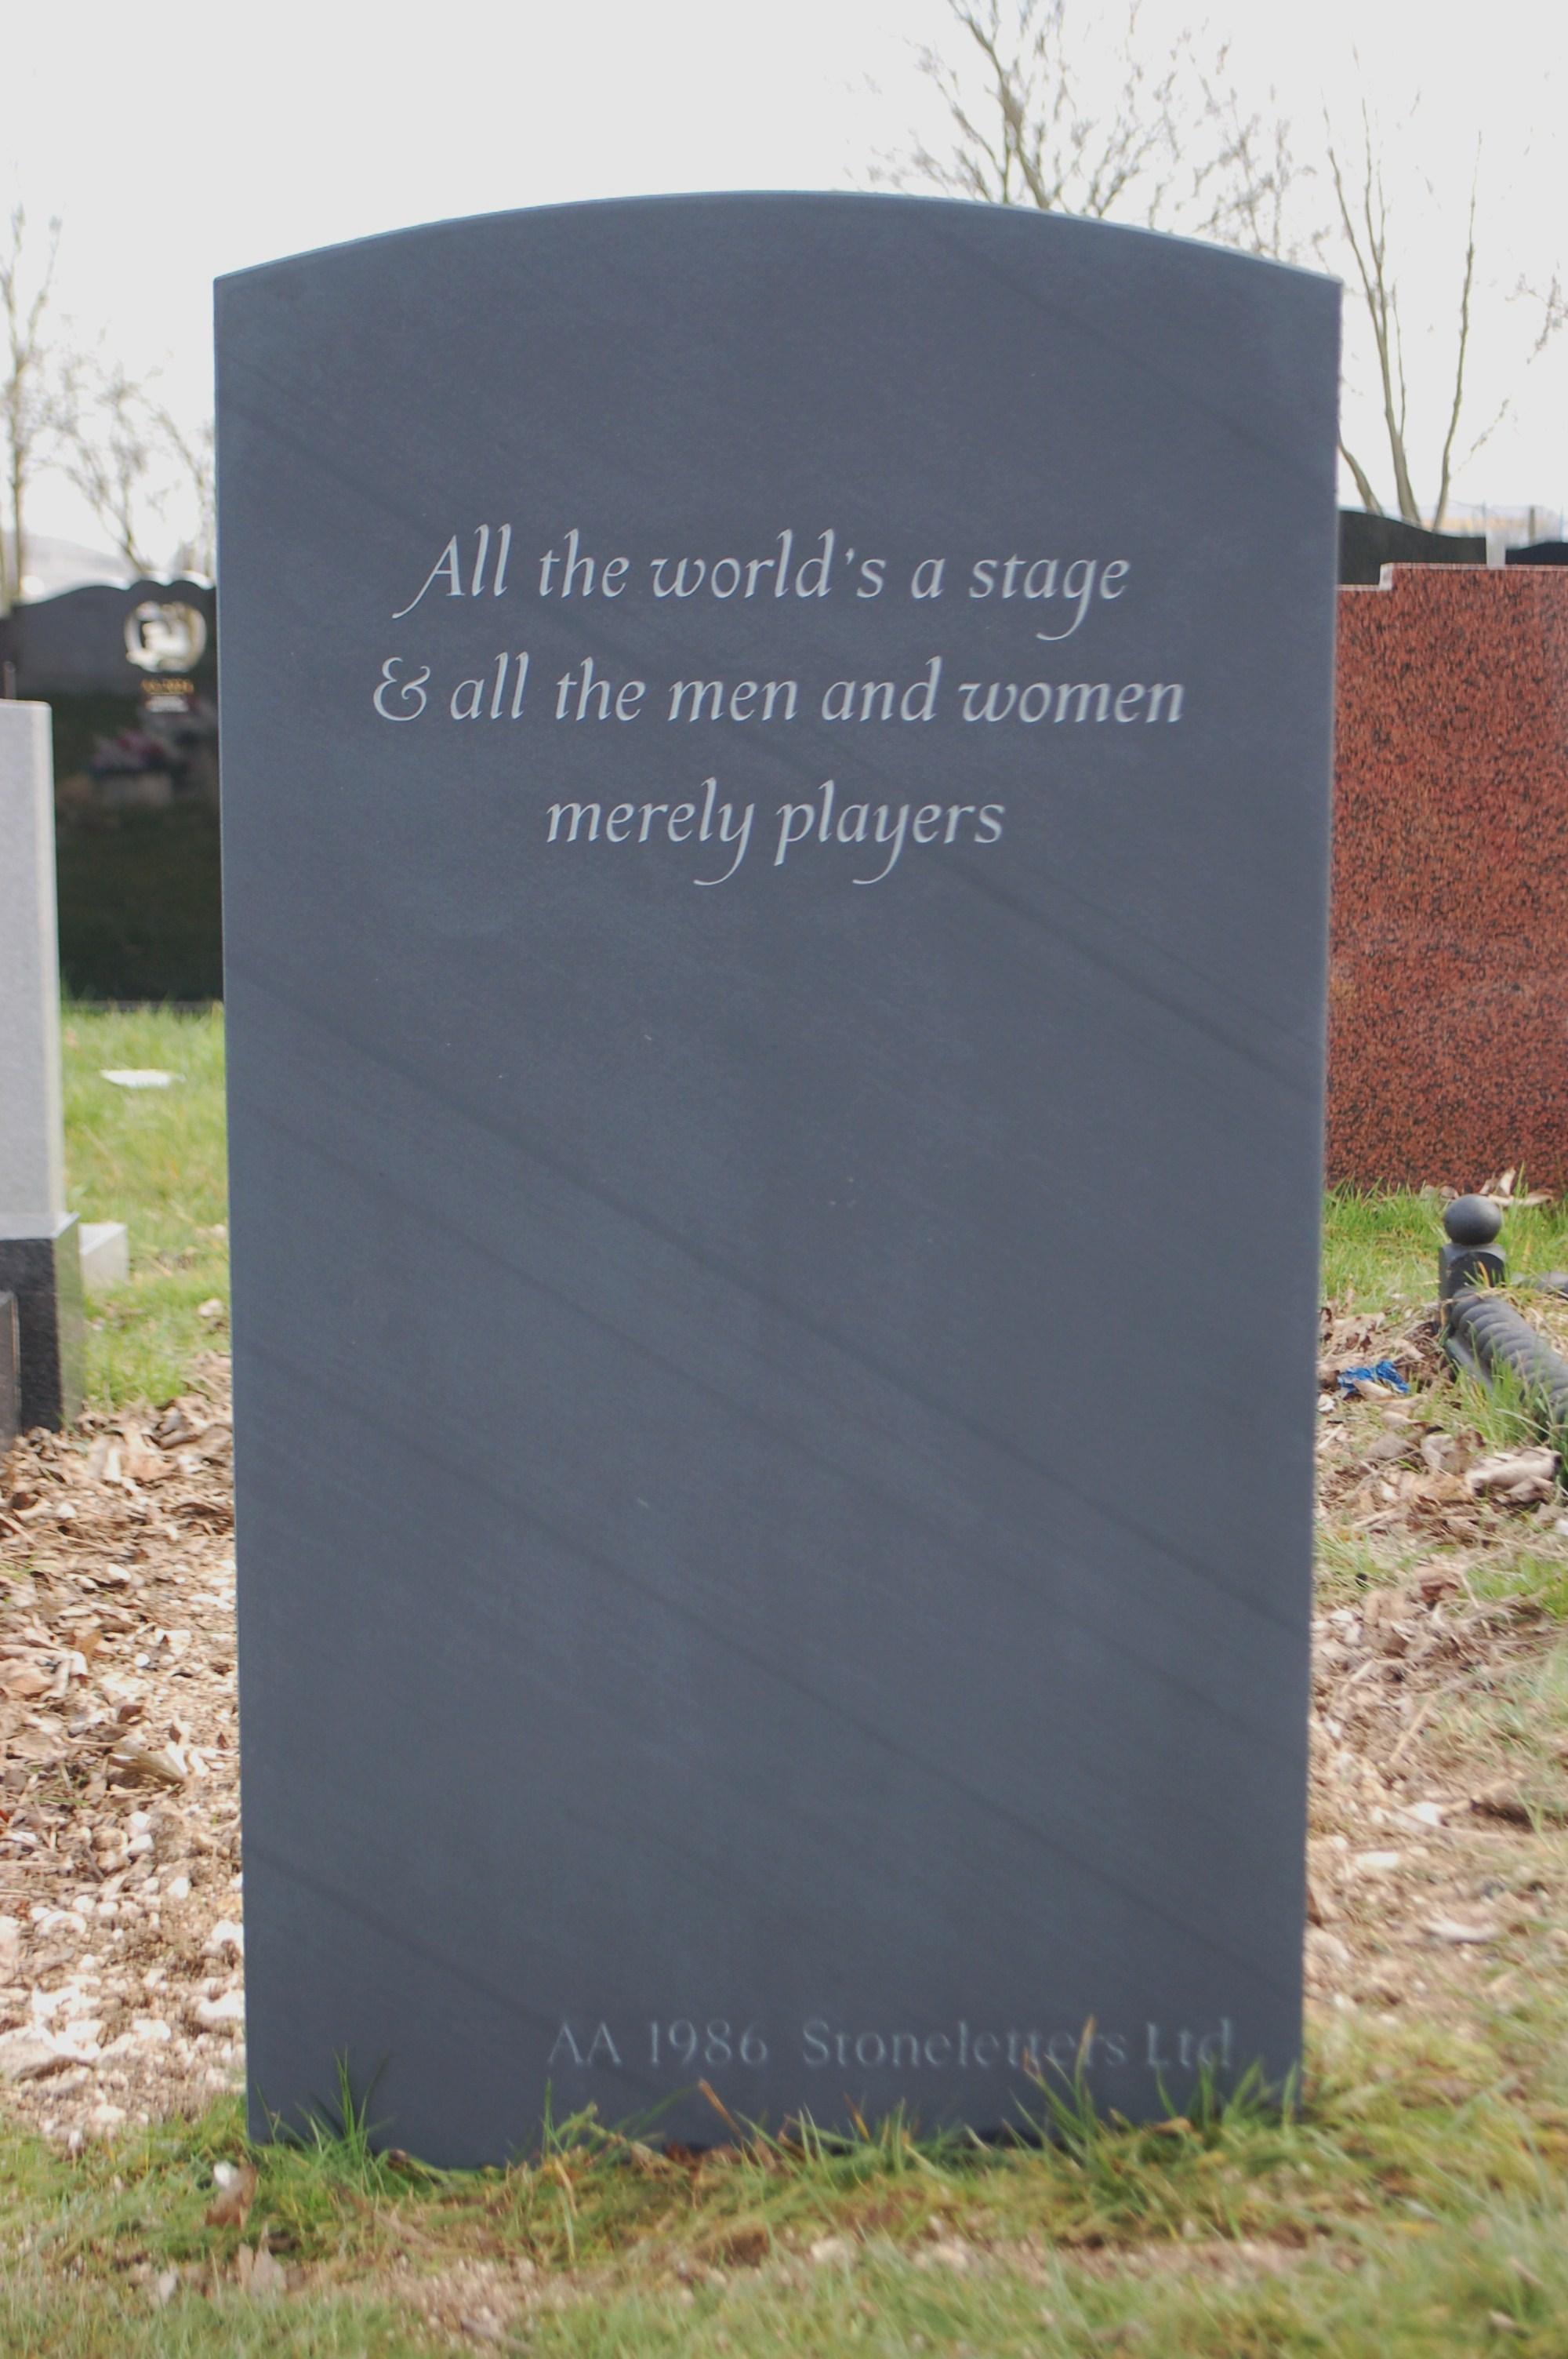 Tasteful Memorial Quotes and Headstone Epitaphs | Blog | Stoneletters